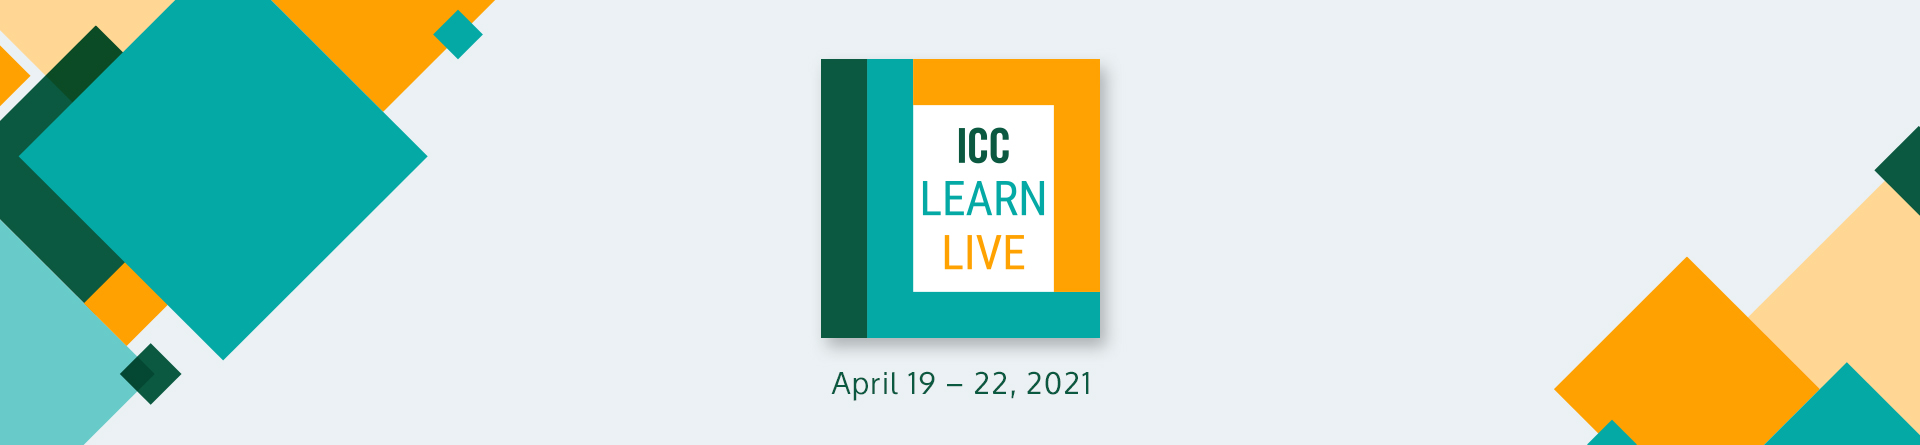 ICC Learn Live 2021 Spring